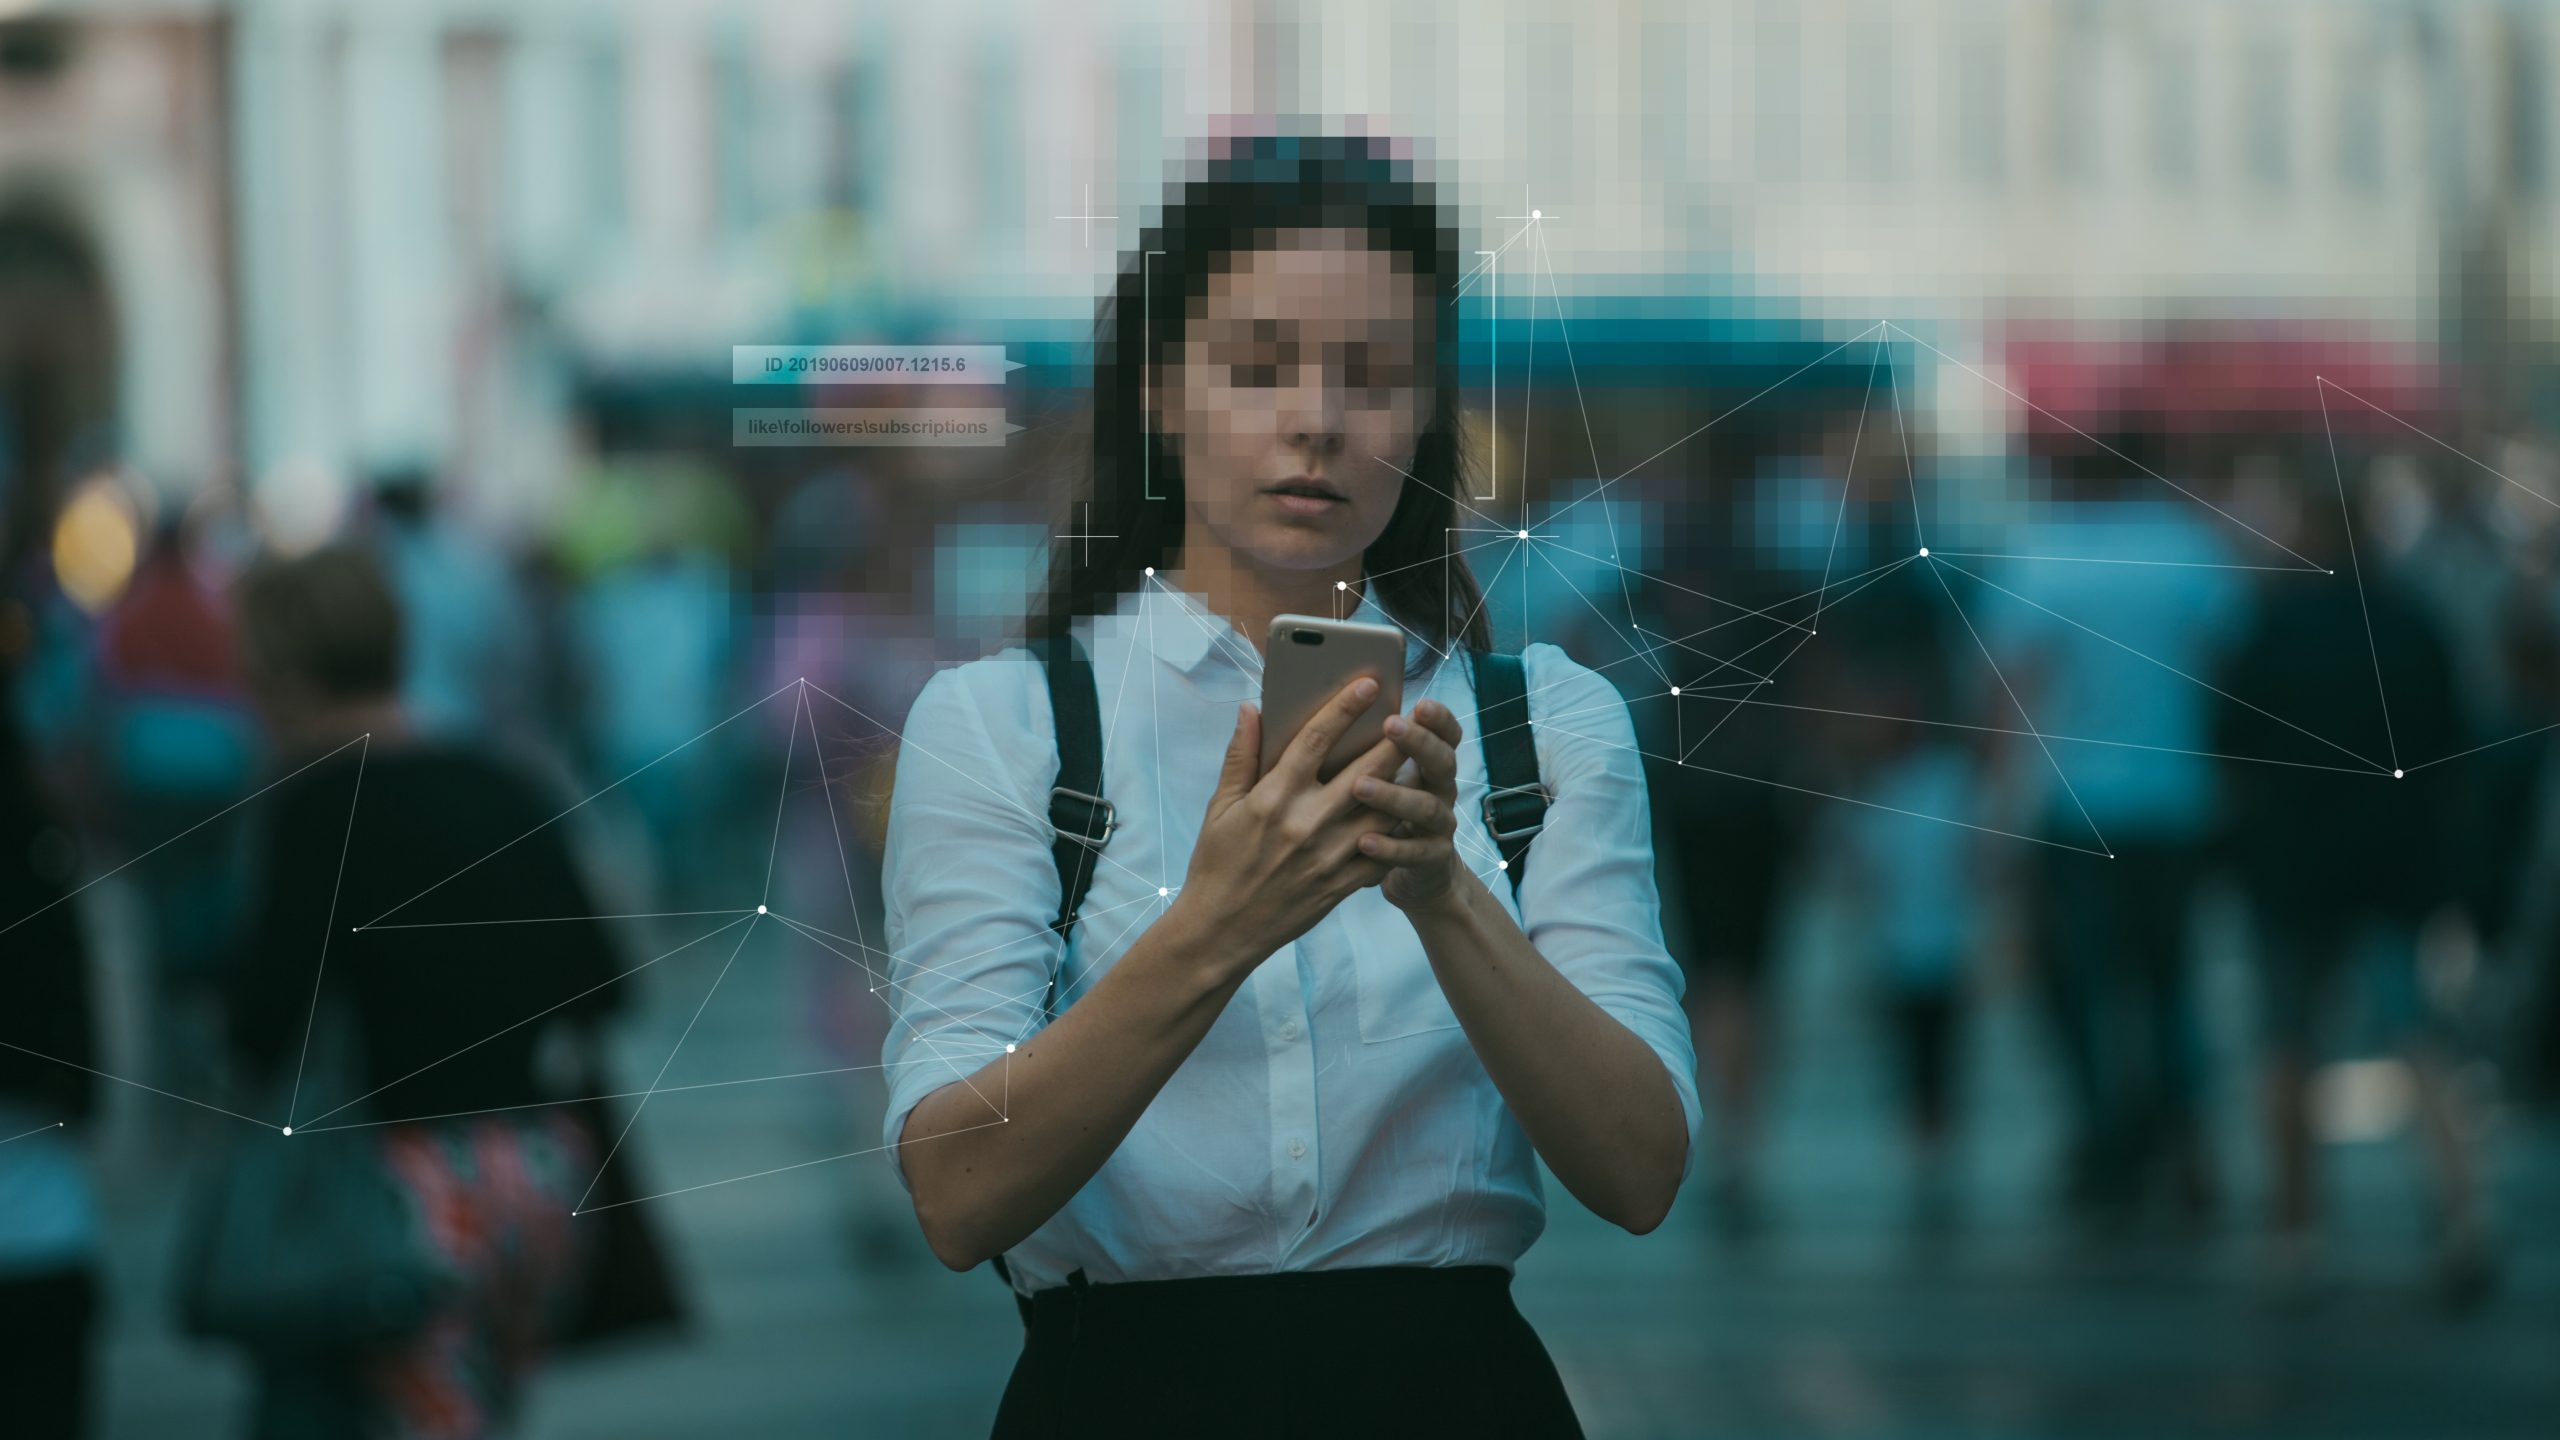 woman with blurred face holding phone